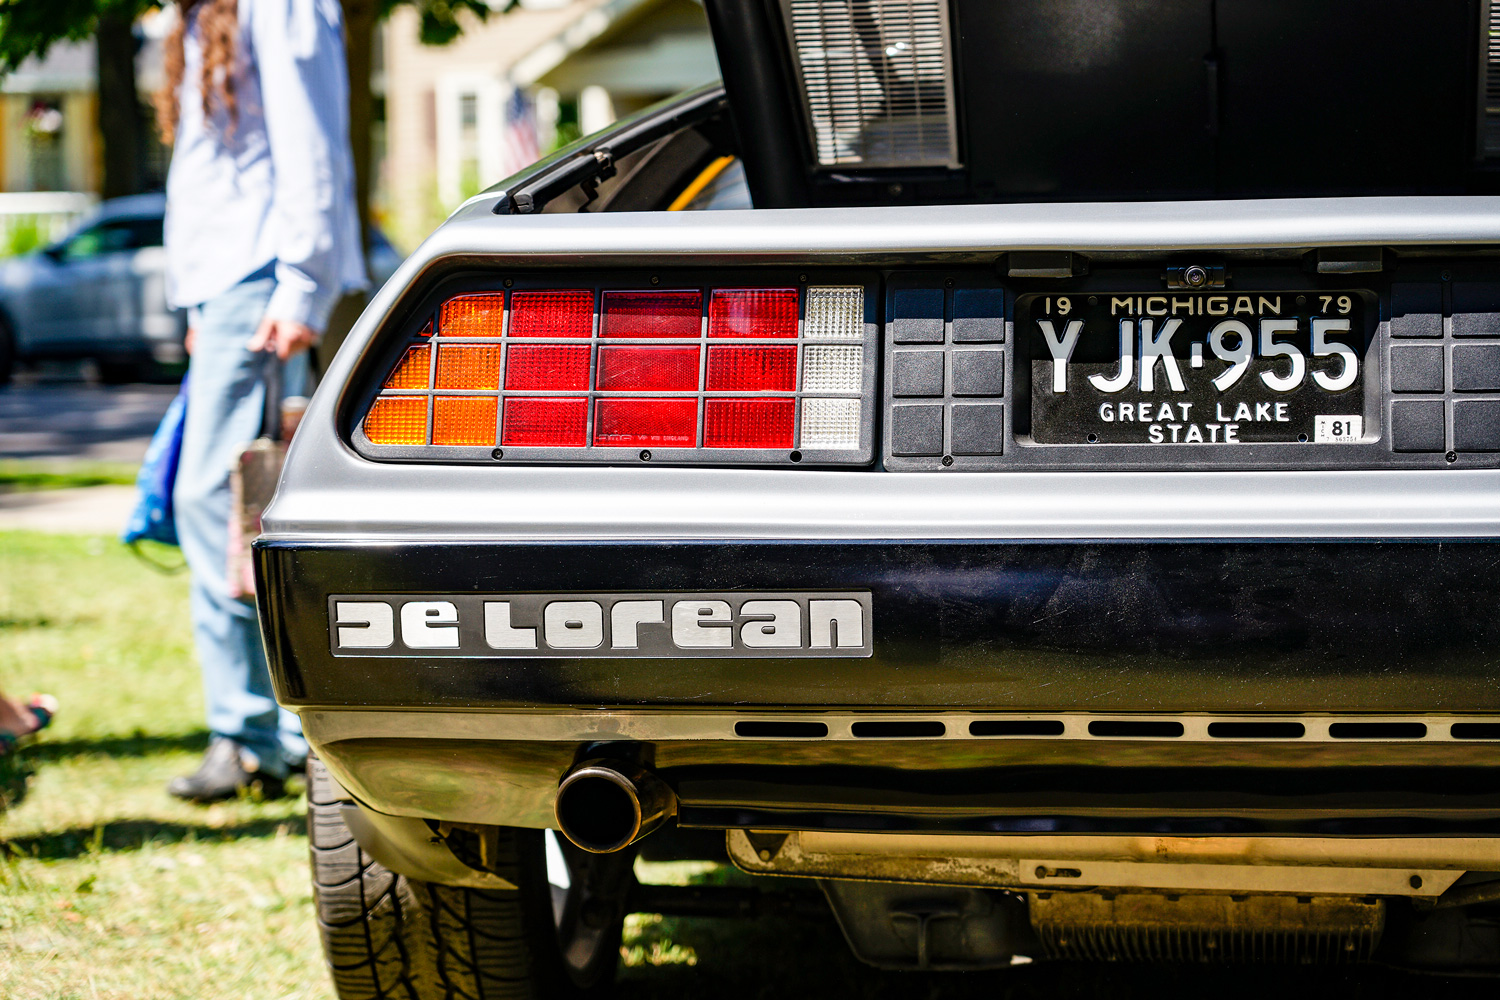 DeLorean rear badge